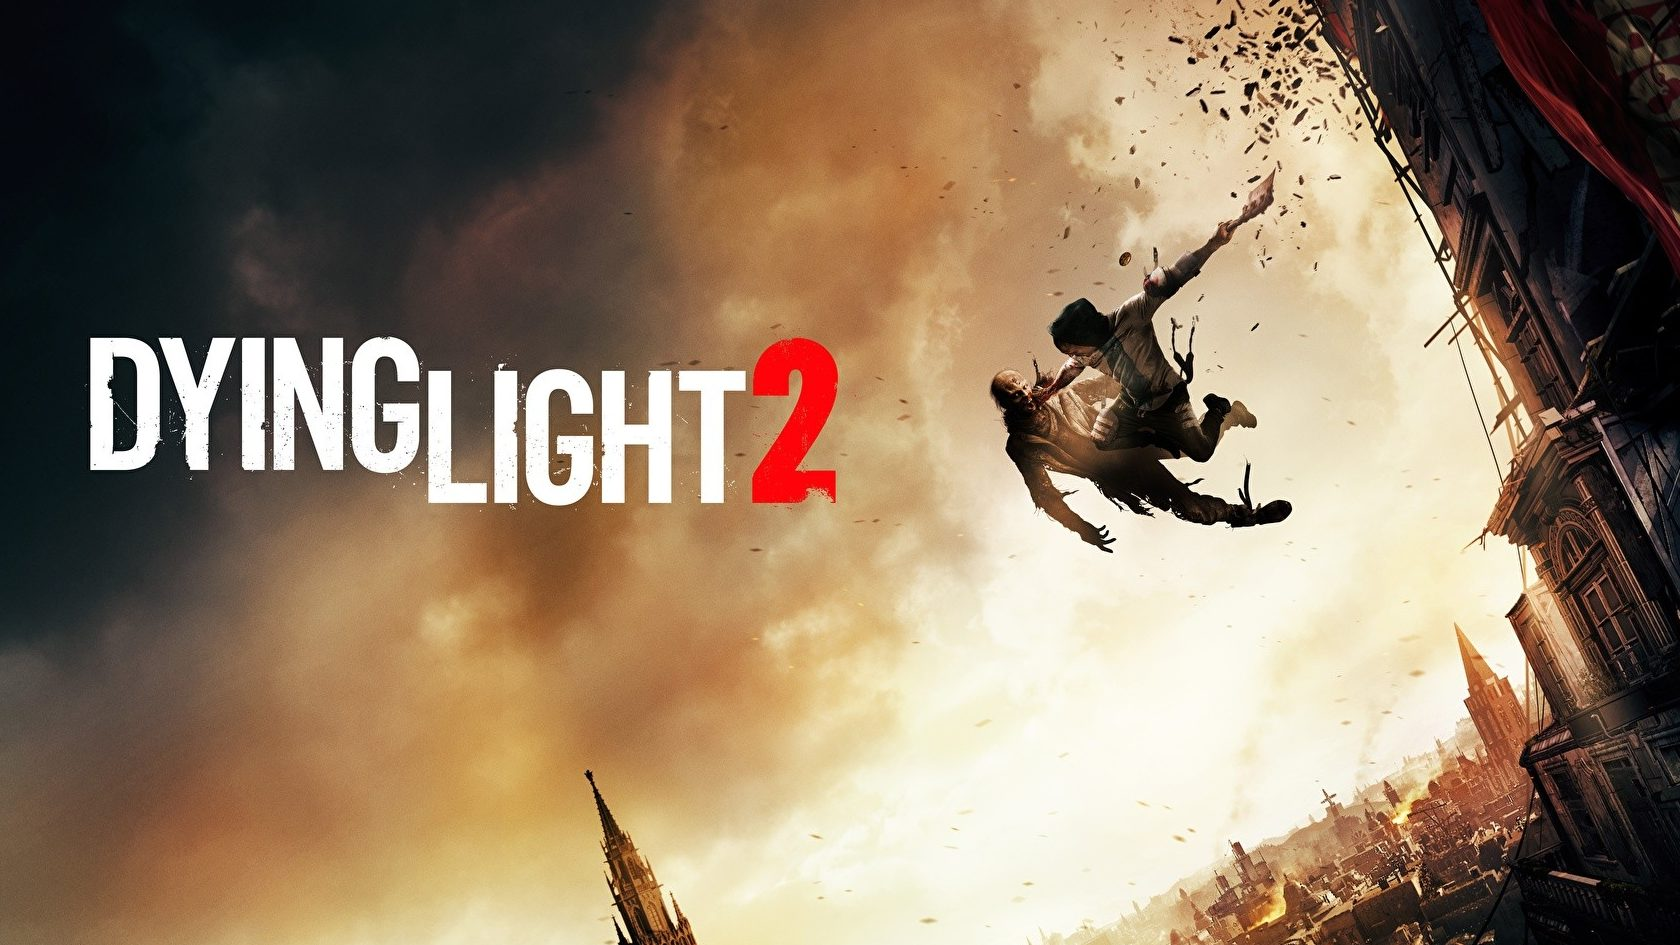 Dying Light 2 portada